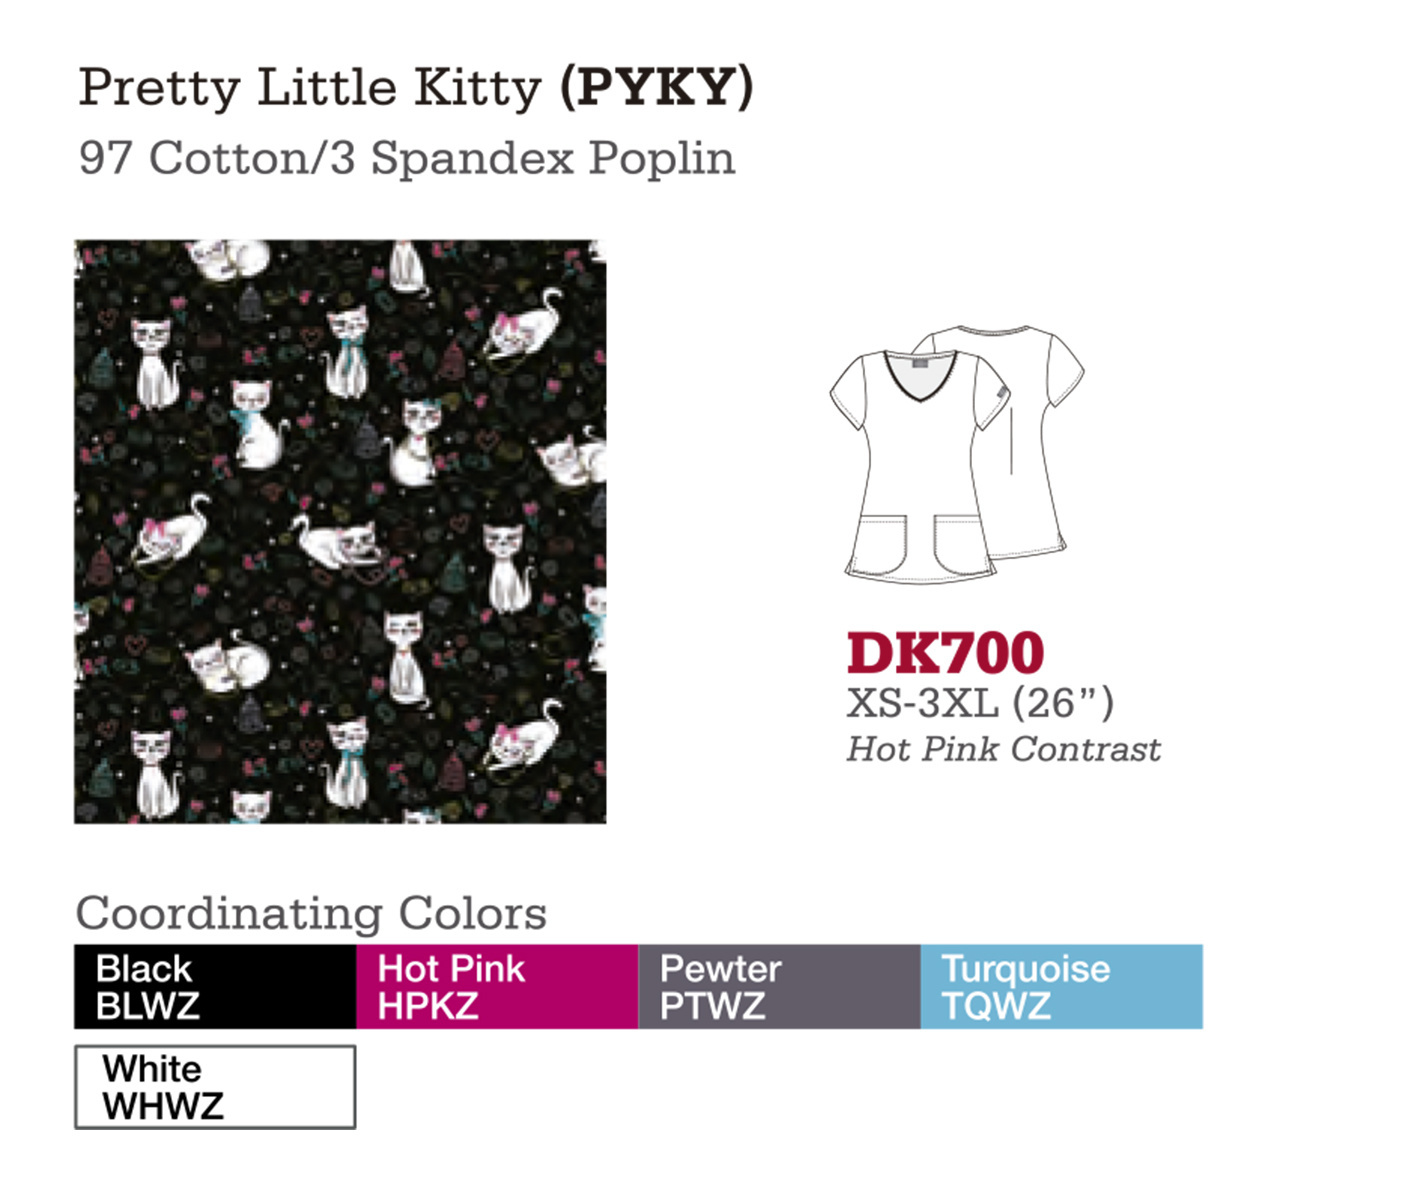 Pretty Little Kitty. DK700.